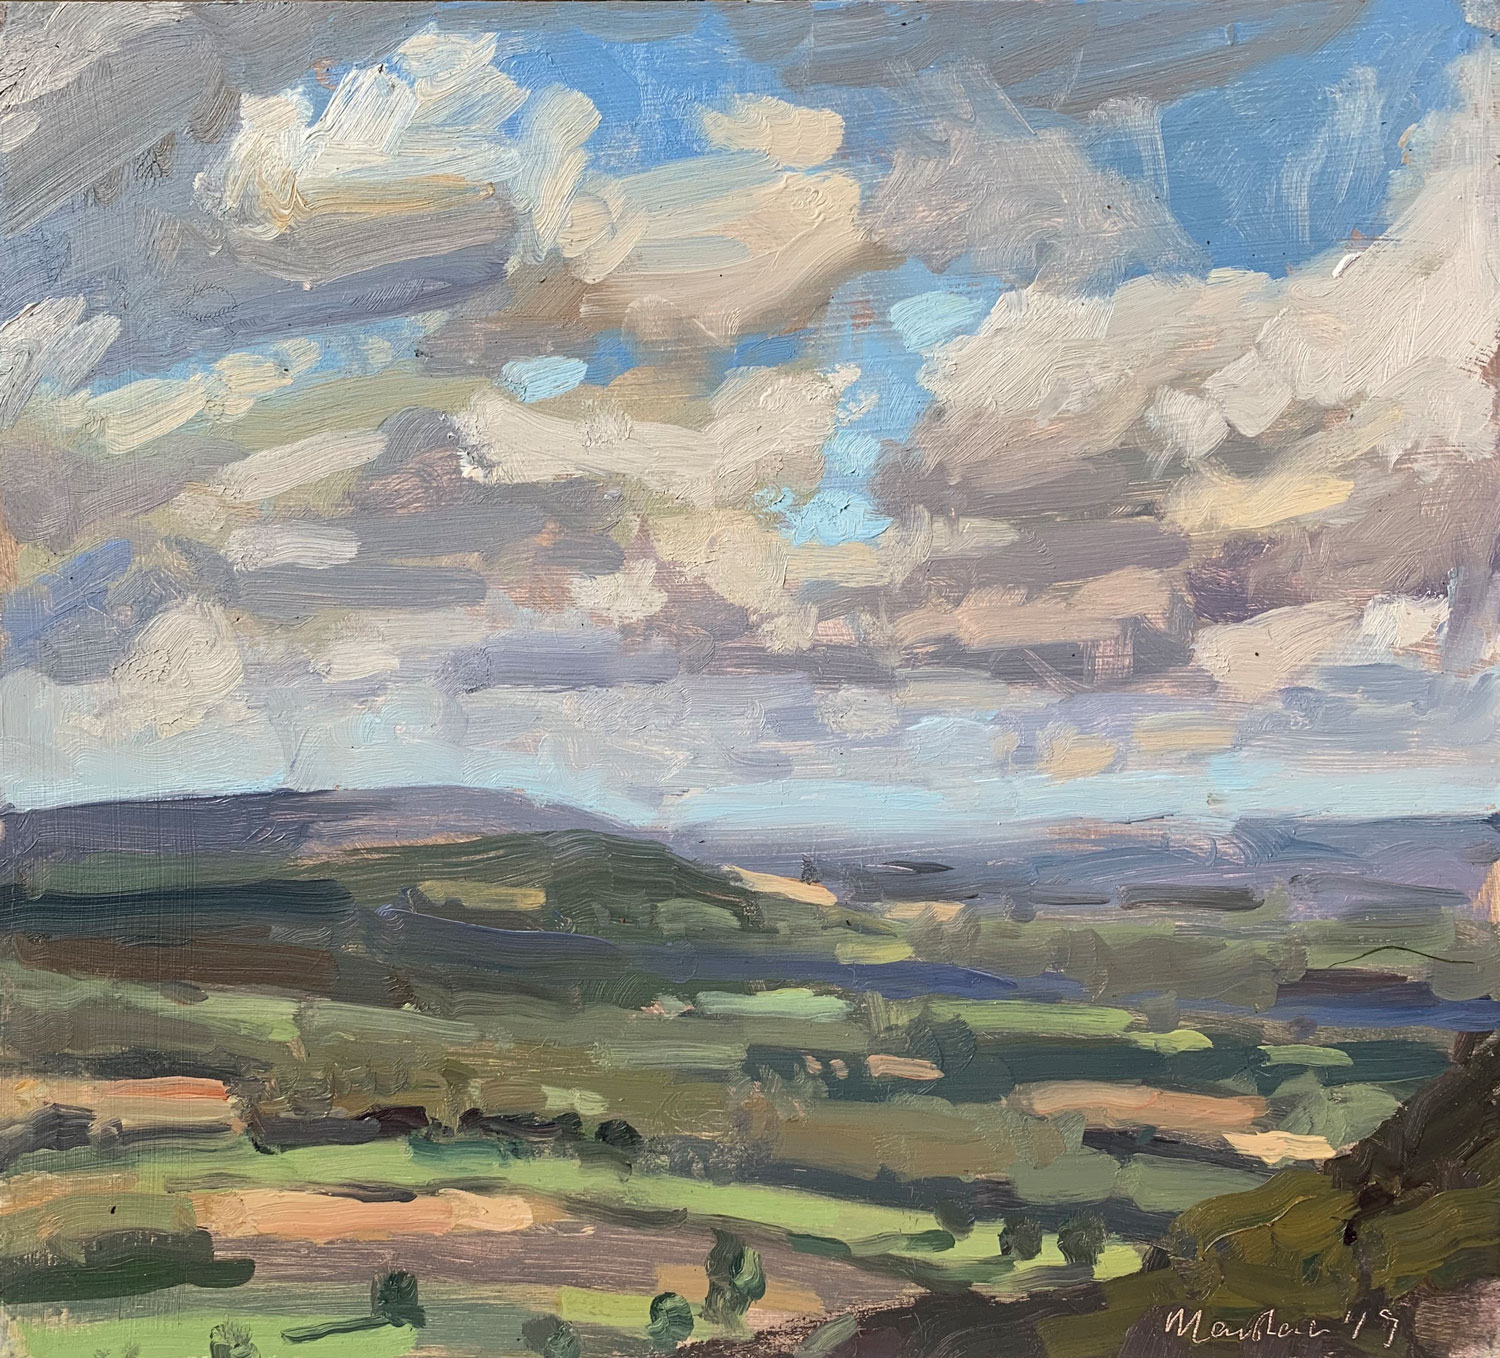 """LATE SEPTEMBER CLOUDS   2019   oil on panel   8x10""""  £425 (unframed)"""